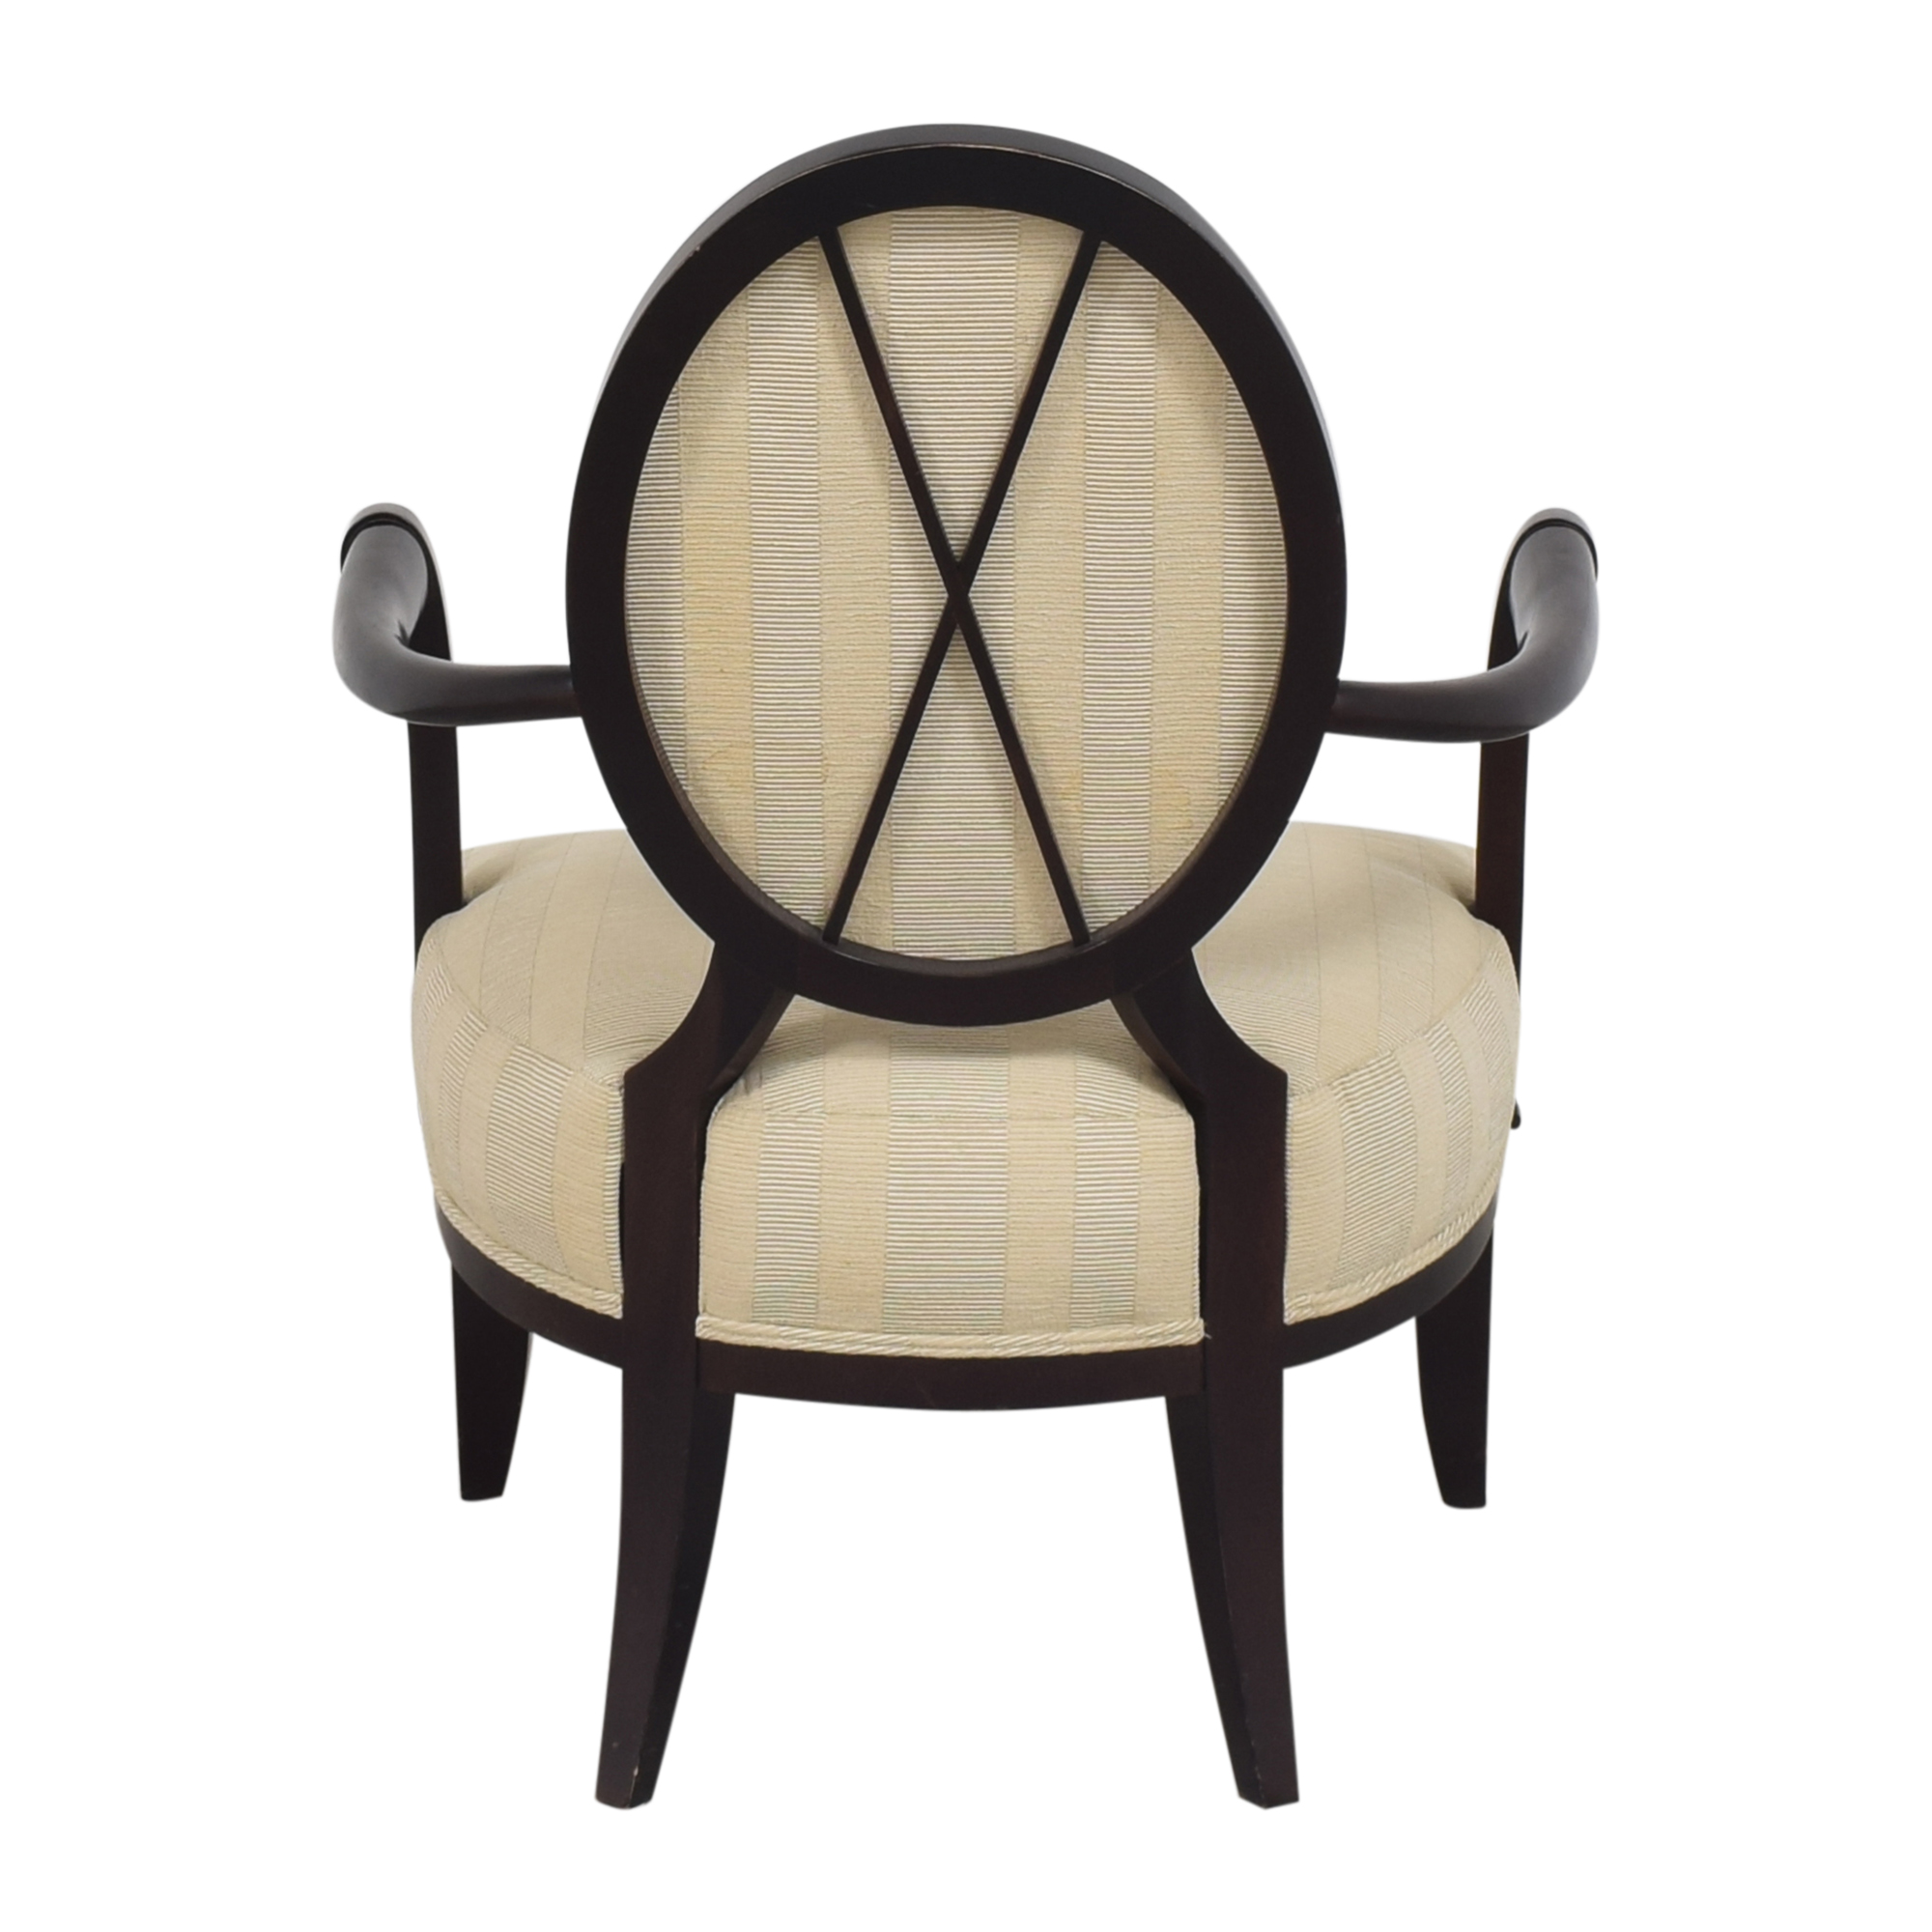 Baker Furniture Barbara Barry for Baker Furniture Oval X Back Armchair Chairs